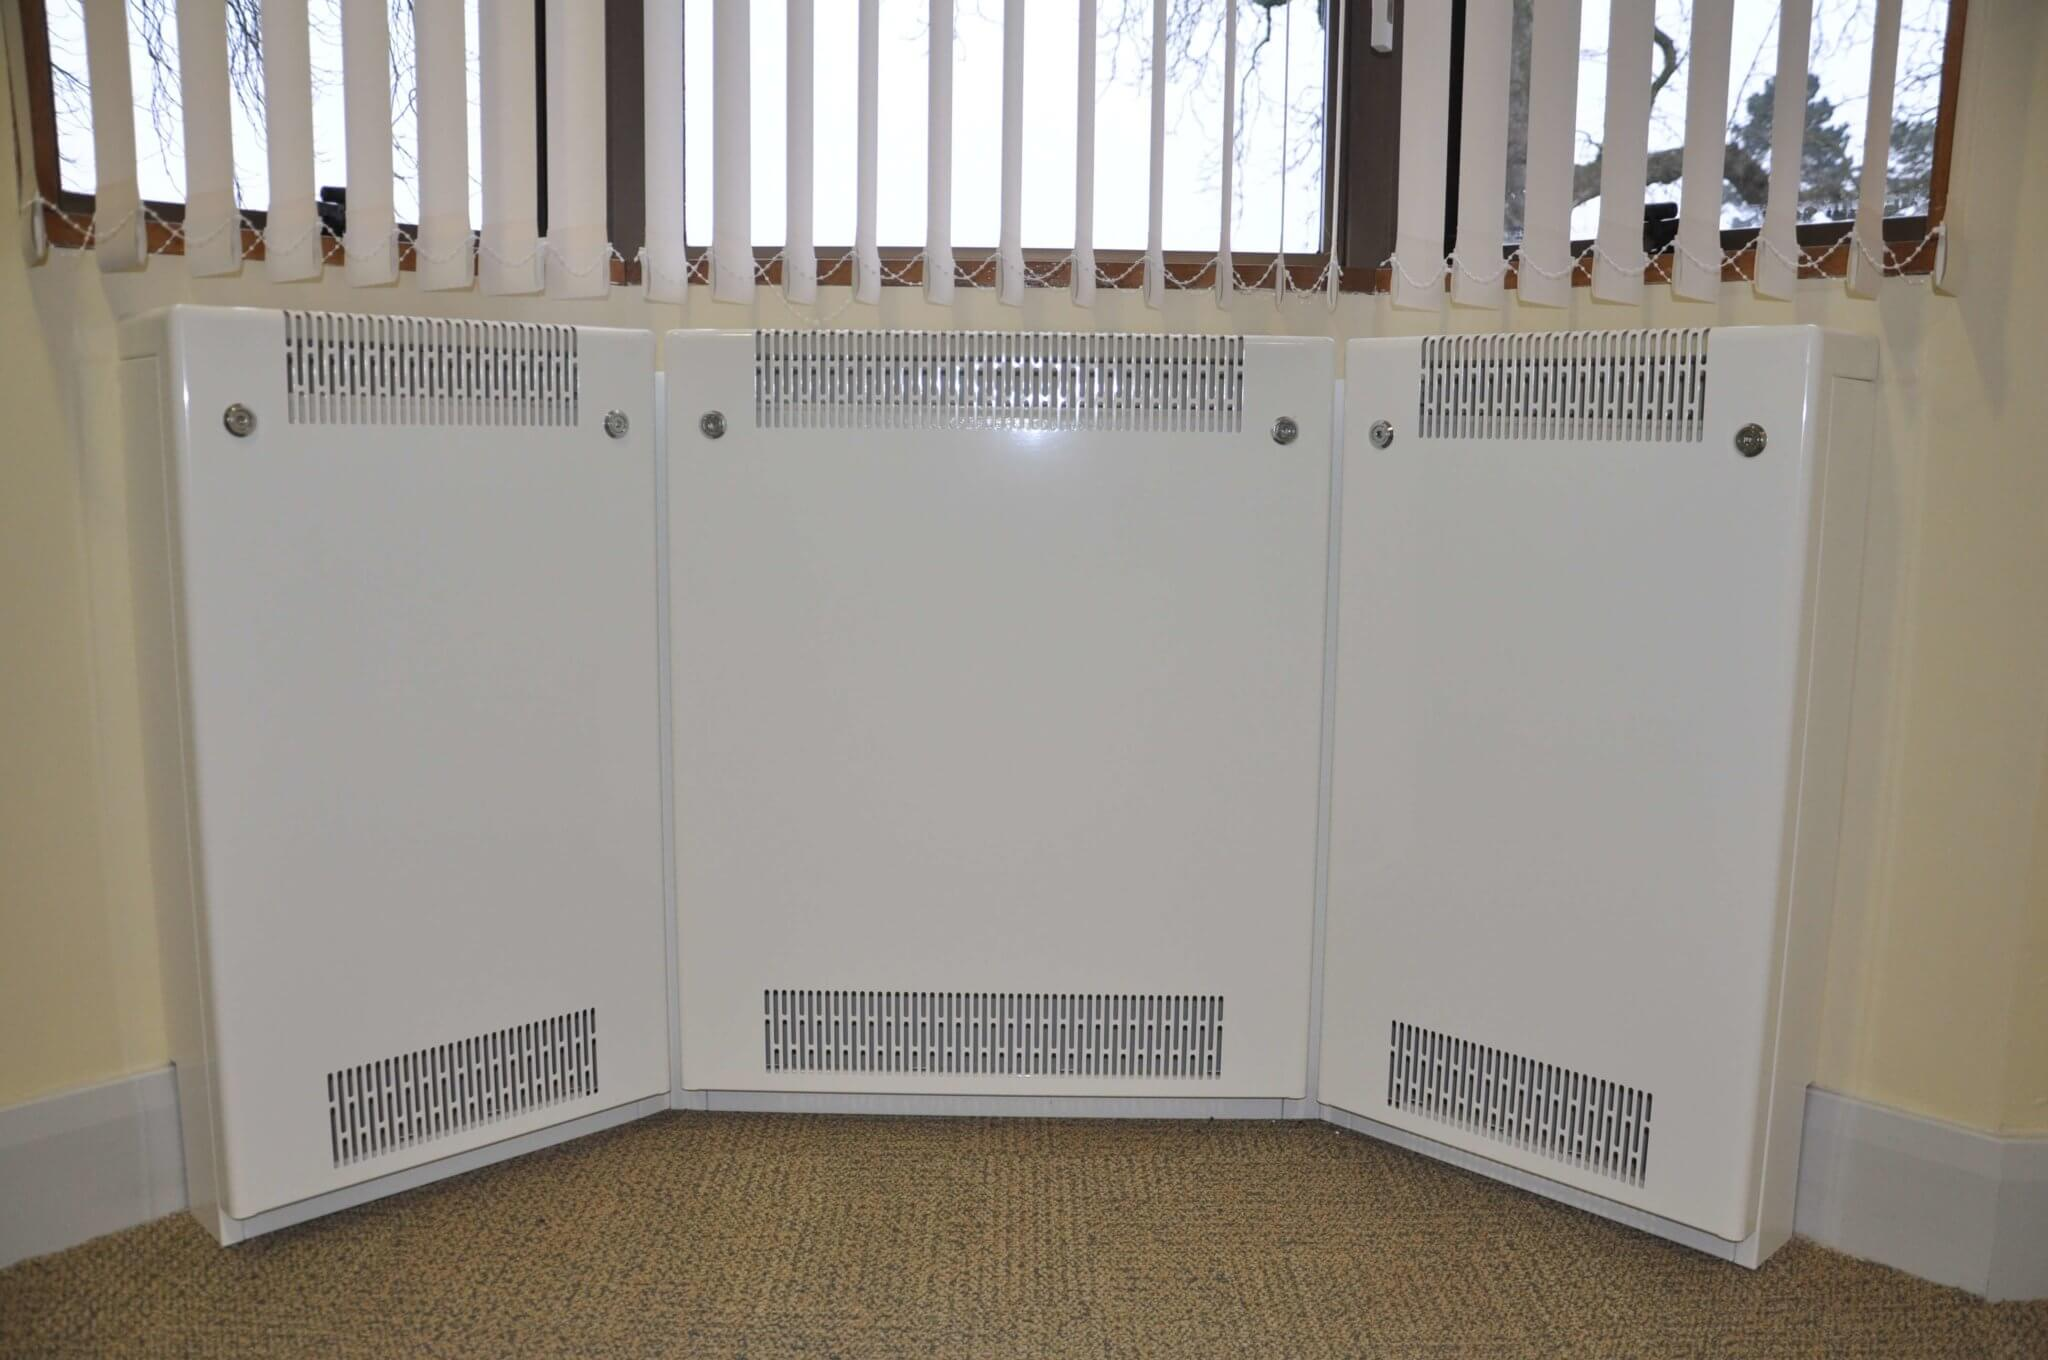 Lst Radiator Covers Guards Bespoke Guards